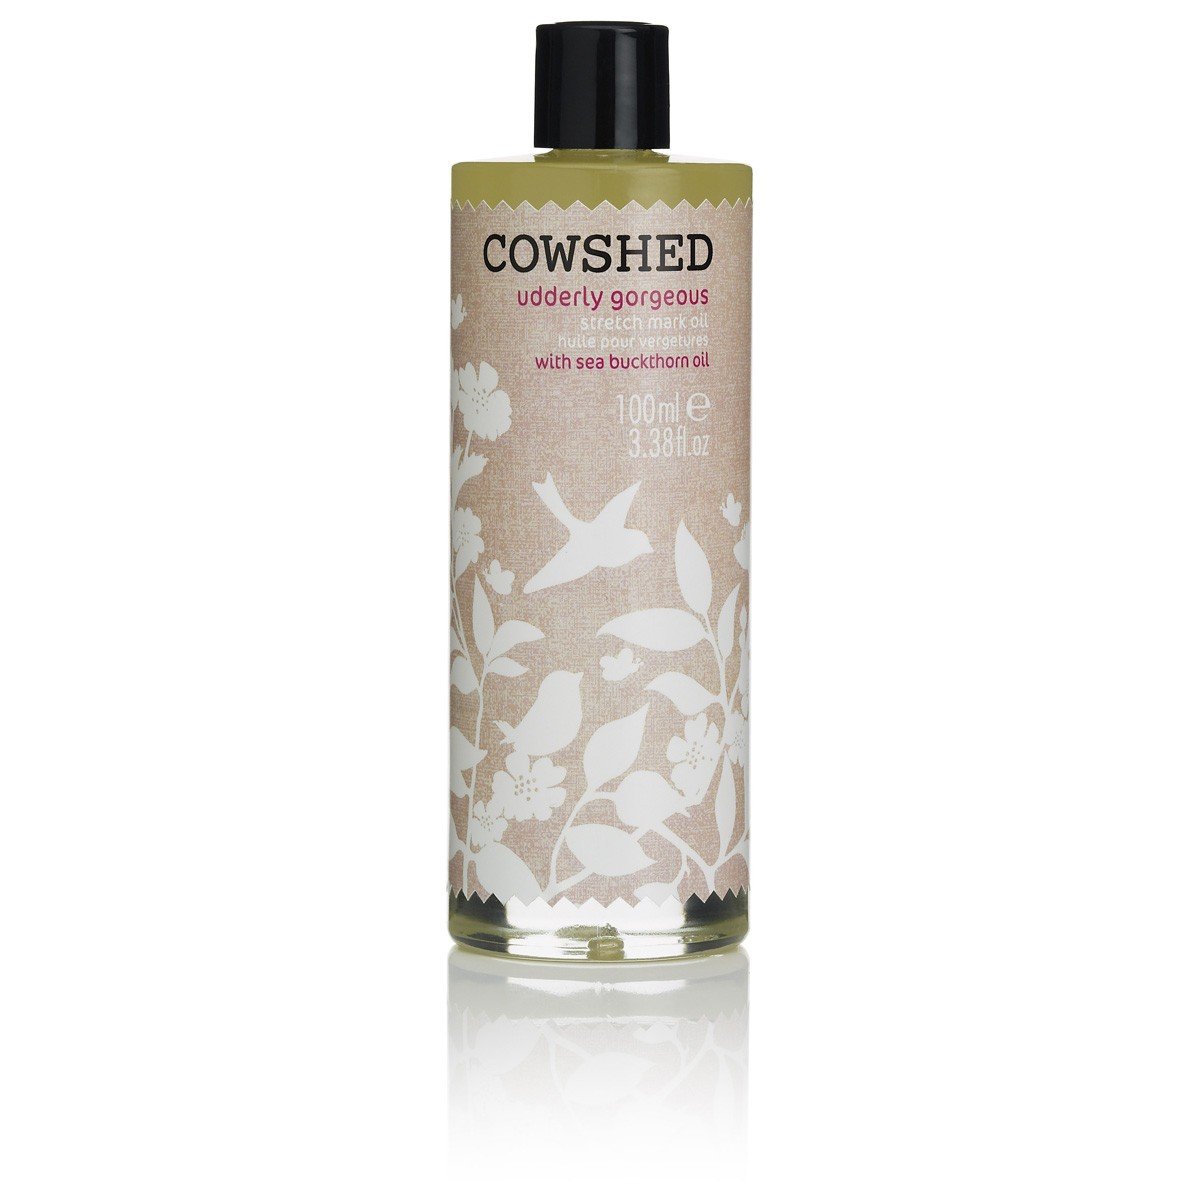 Cowshed Udderly Gorgeous Stretch Mark Oil